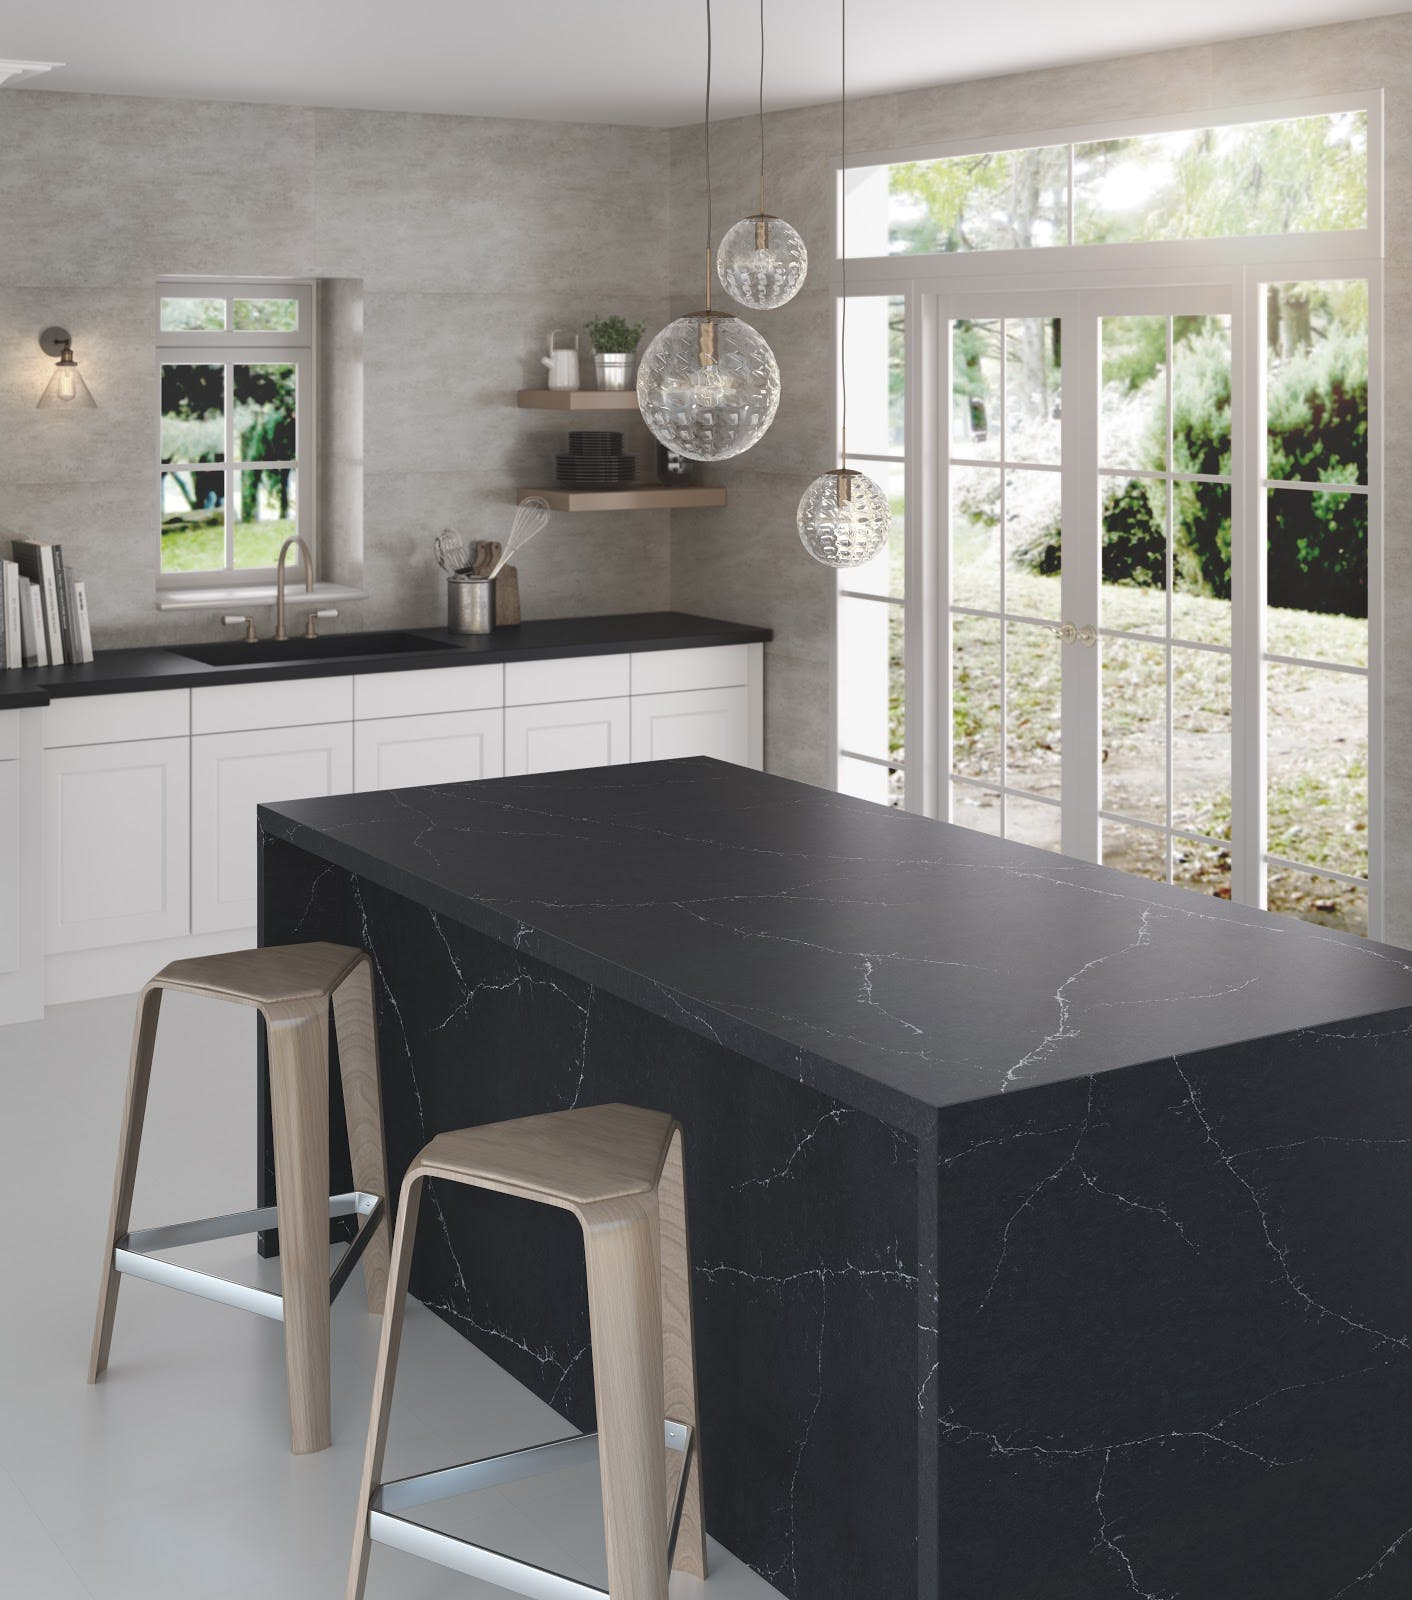 Image of RS11272 Silestone Kitchen Eternal Charcoal Soapstone 2 in Compact kitchens: Who says they're a disadvantage? - Cosentino